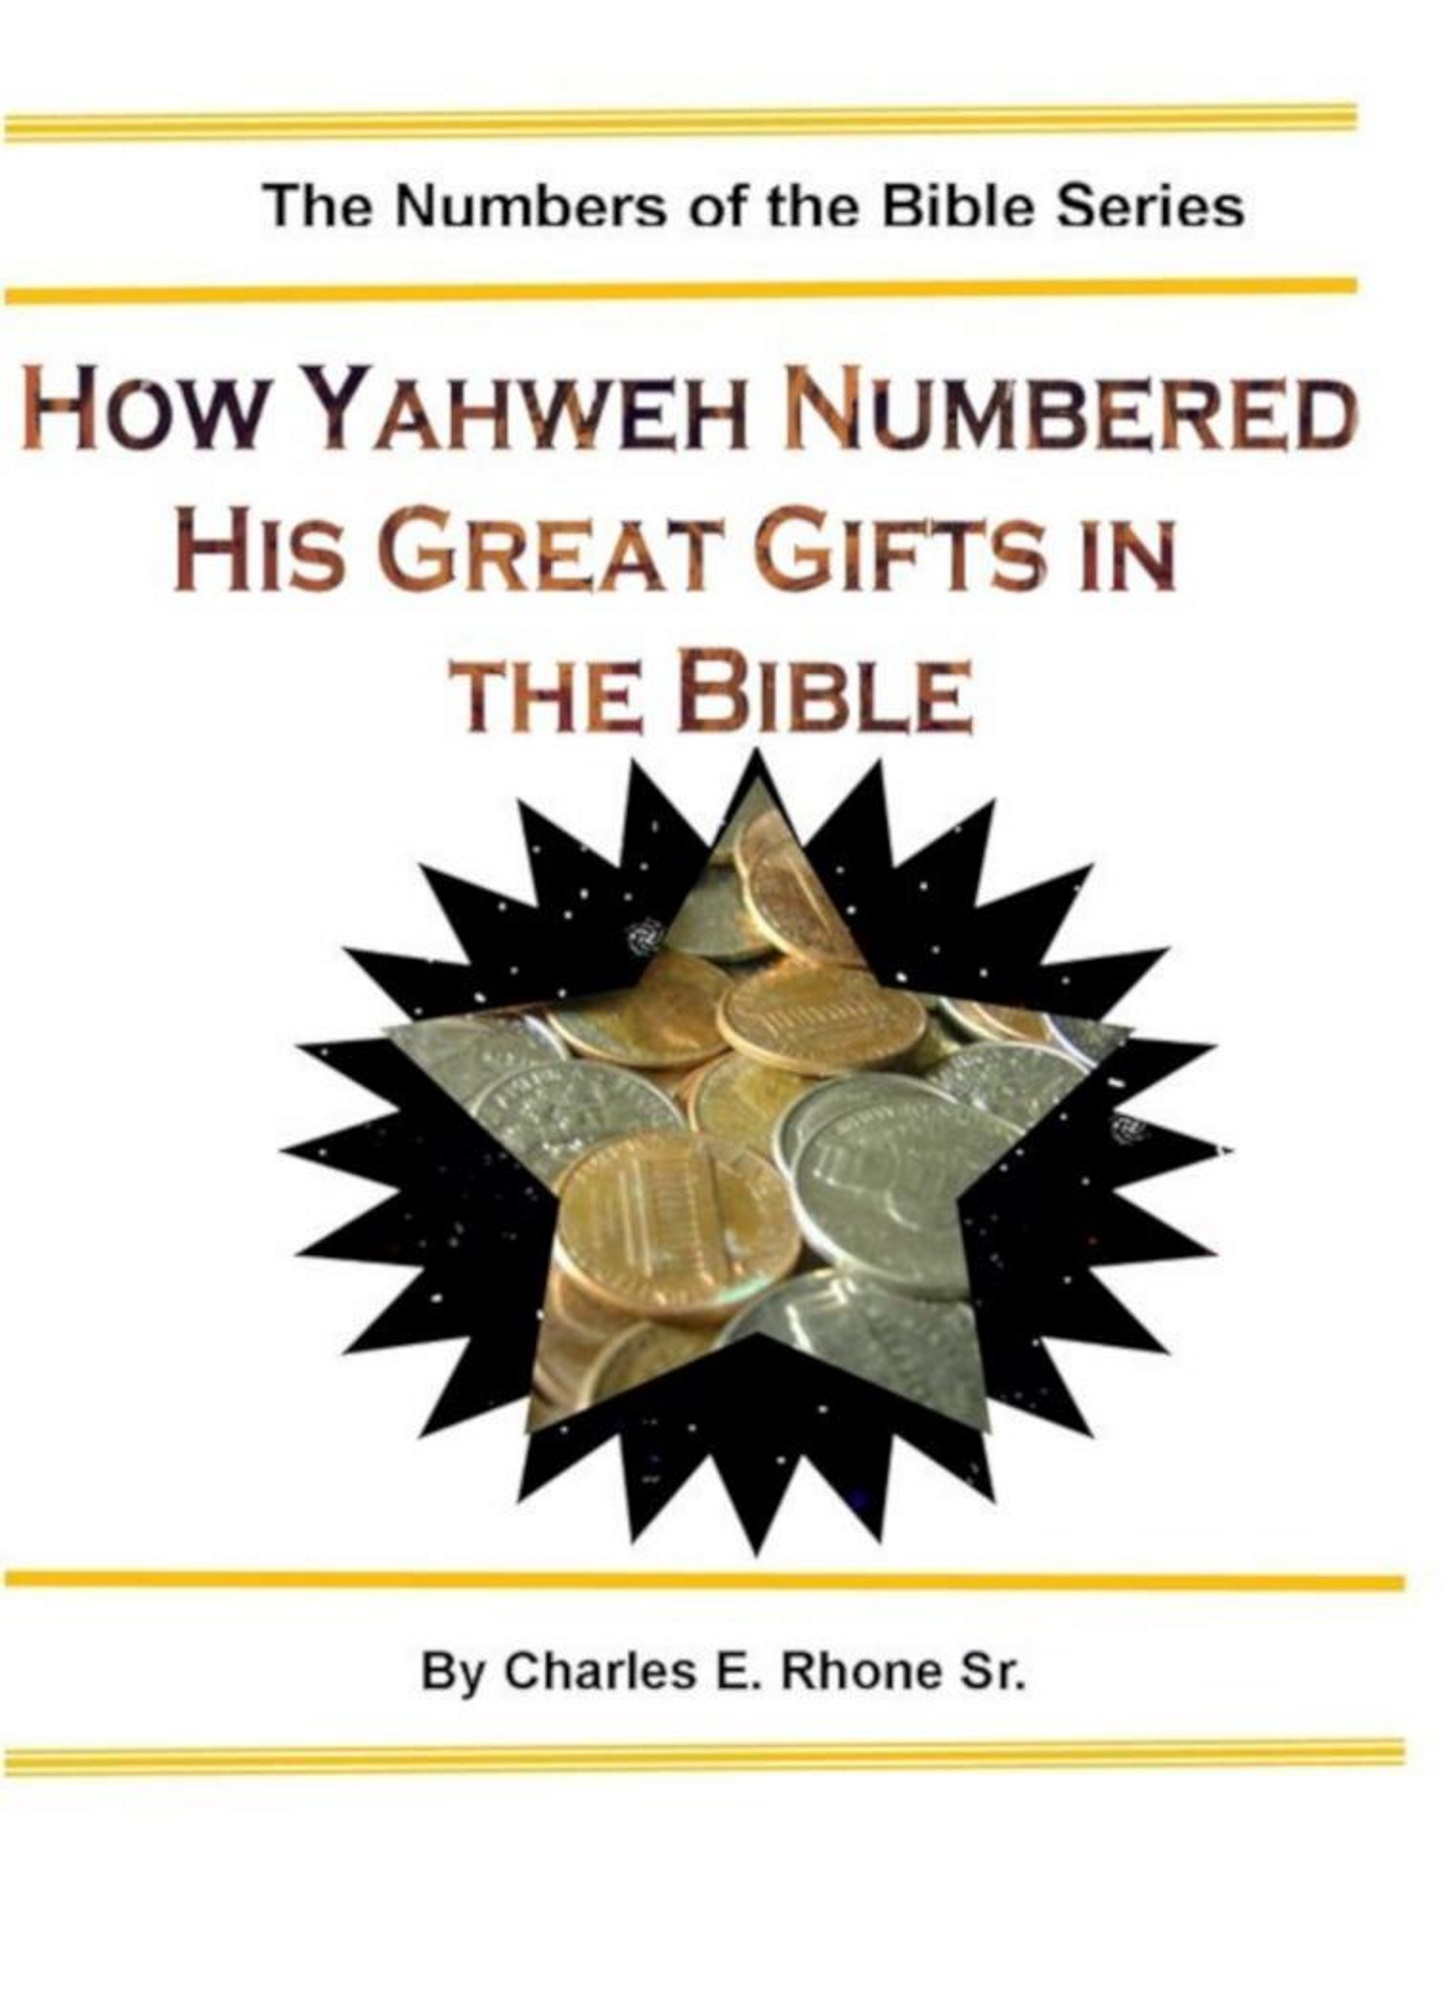 How Yahweh Numbered His Great Gifts in the Bible, an Ebook by Charles  Rhone, Sr